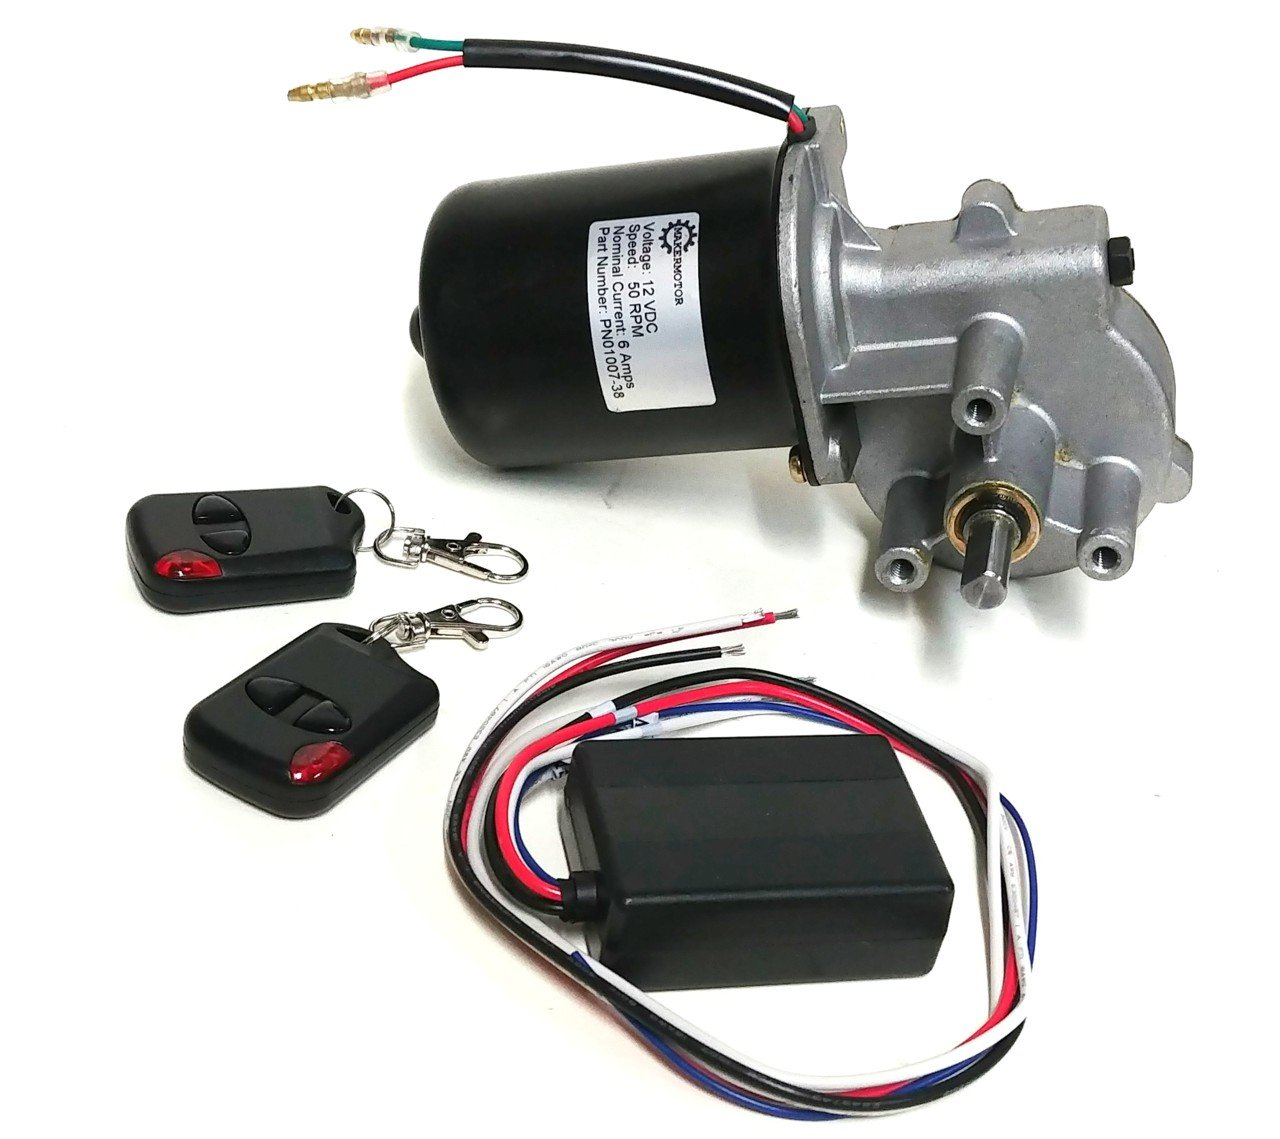 Radio Controlled Electric Motor Switch R C Makermotor 3 8 D Shaft 12vdc Remote Control Wireless Gear Momentary Switching Between Reverse And Forward Industrial